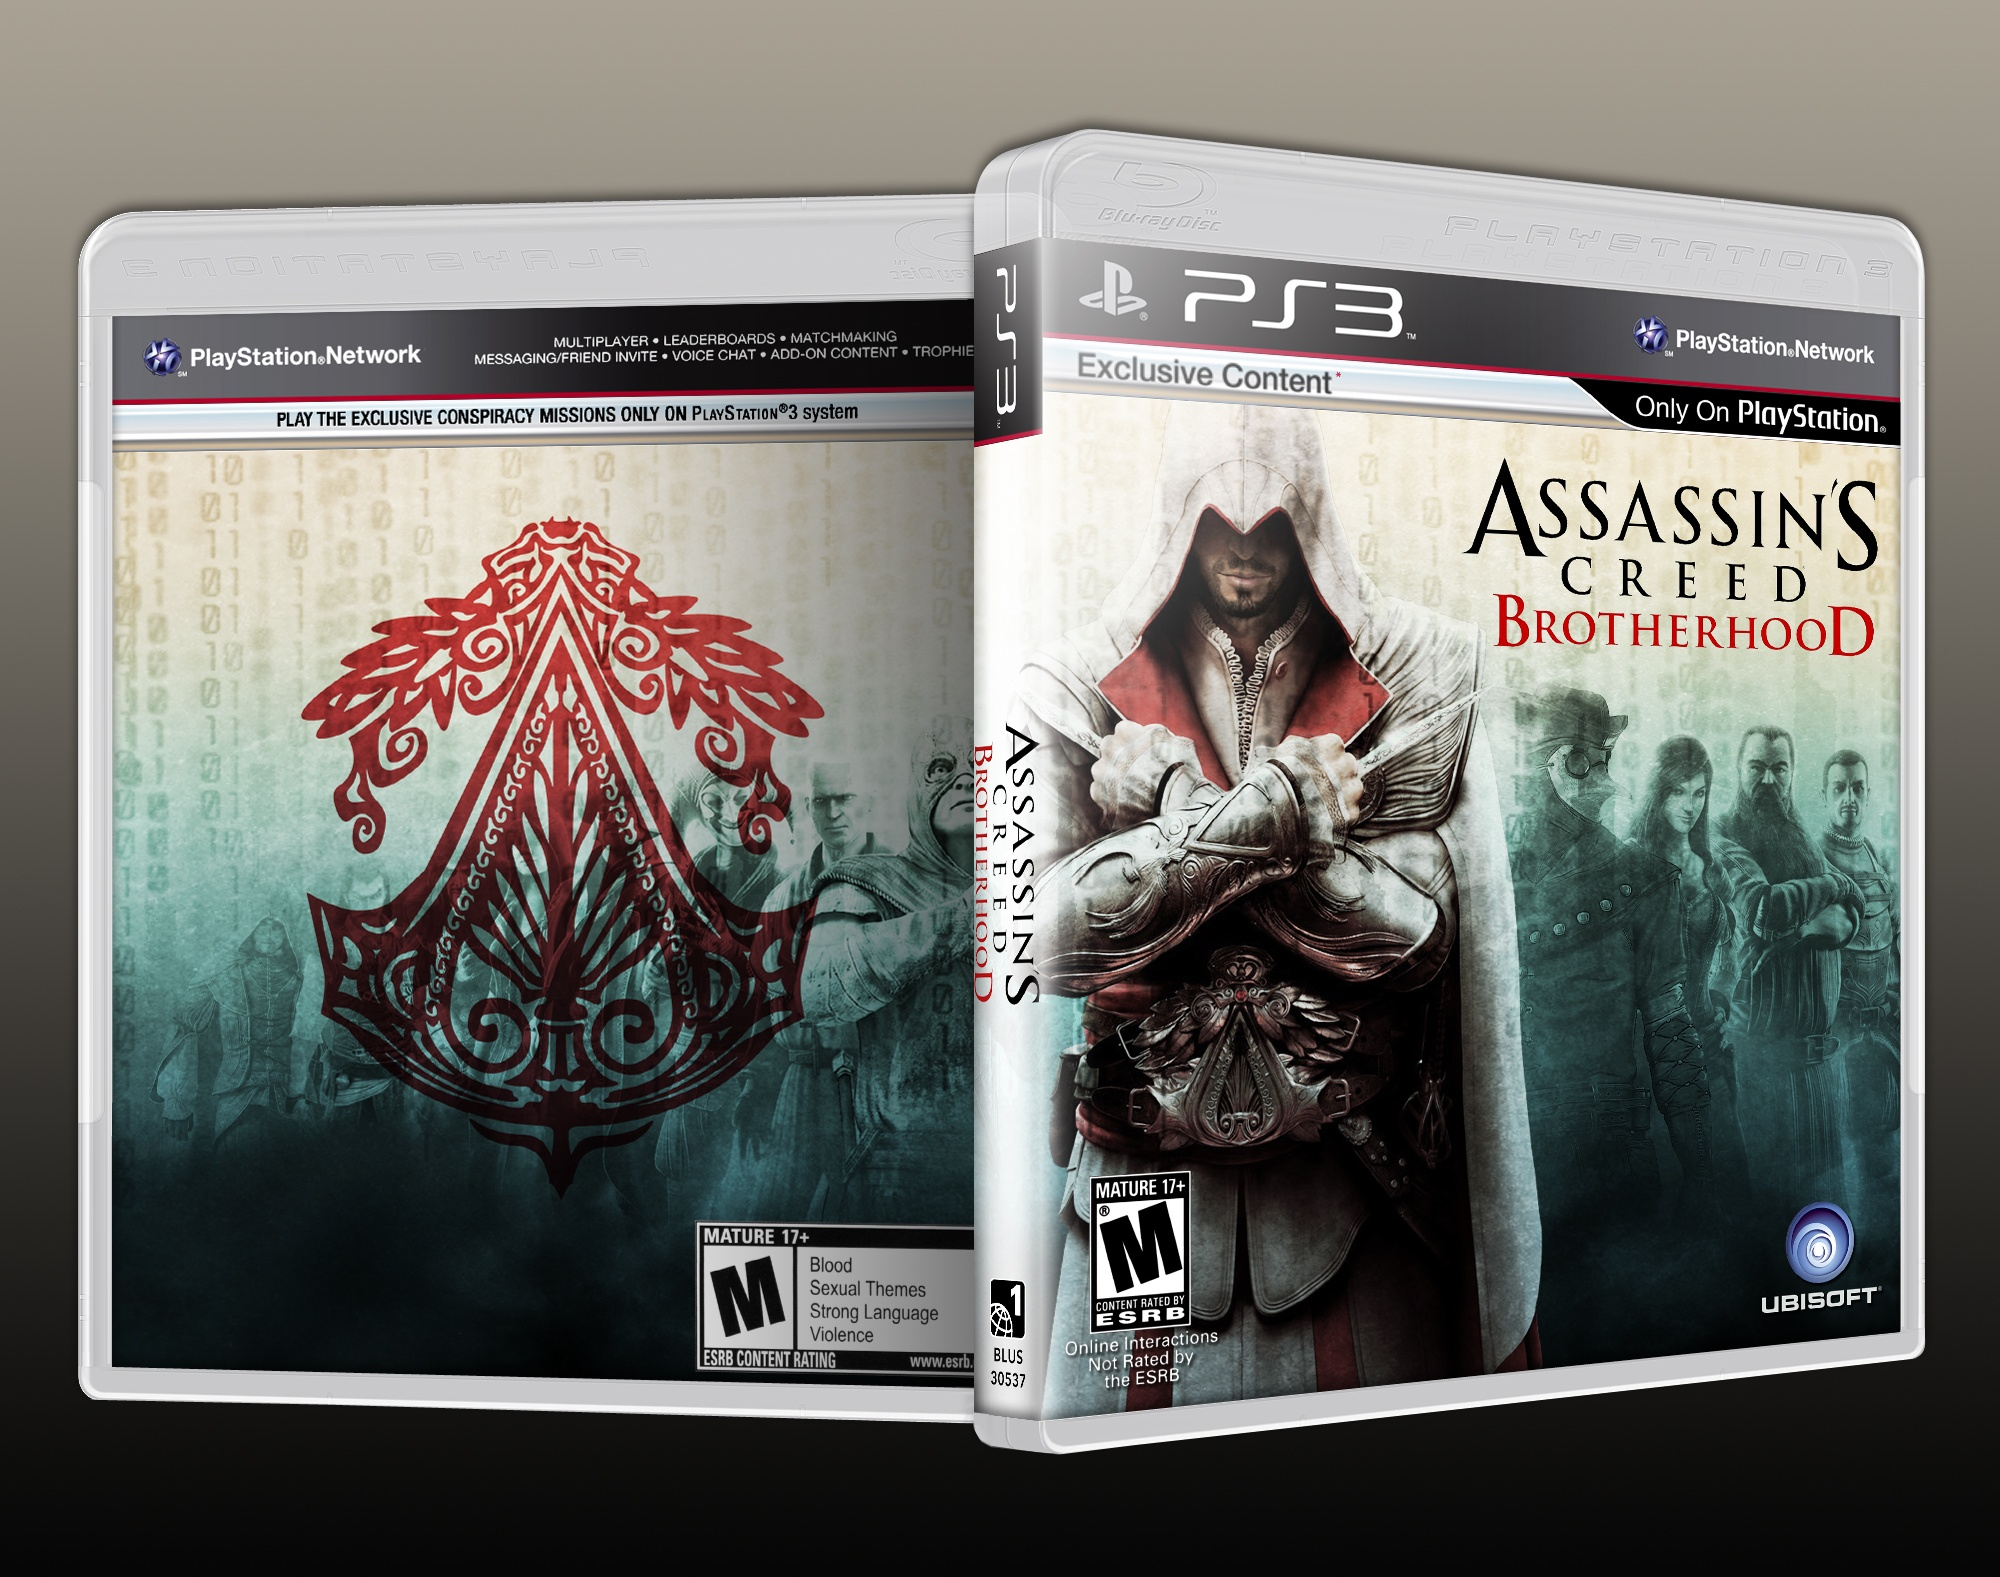 Assassin's Creed Brotherhood box cover